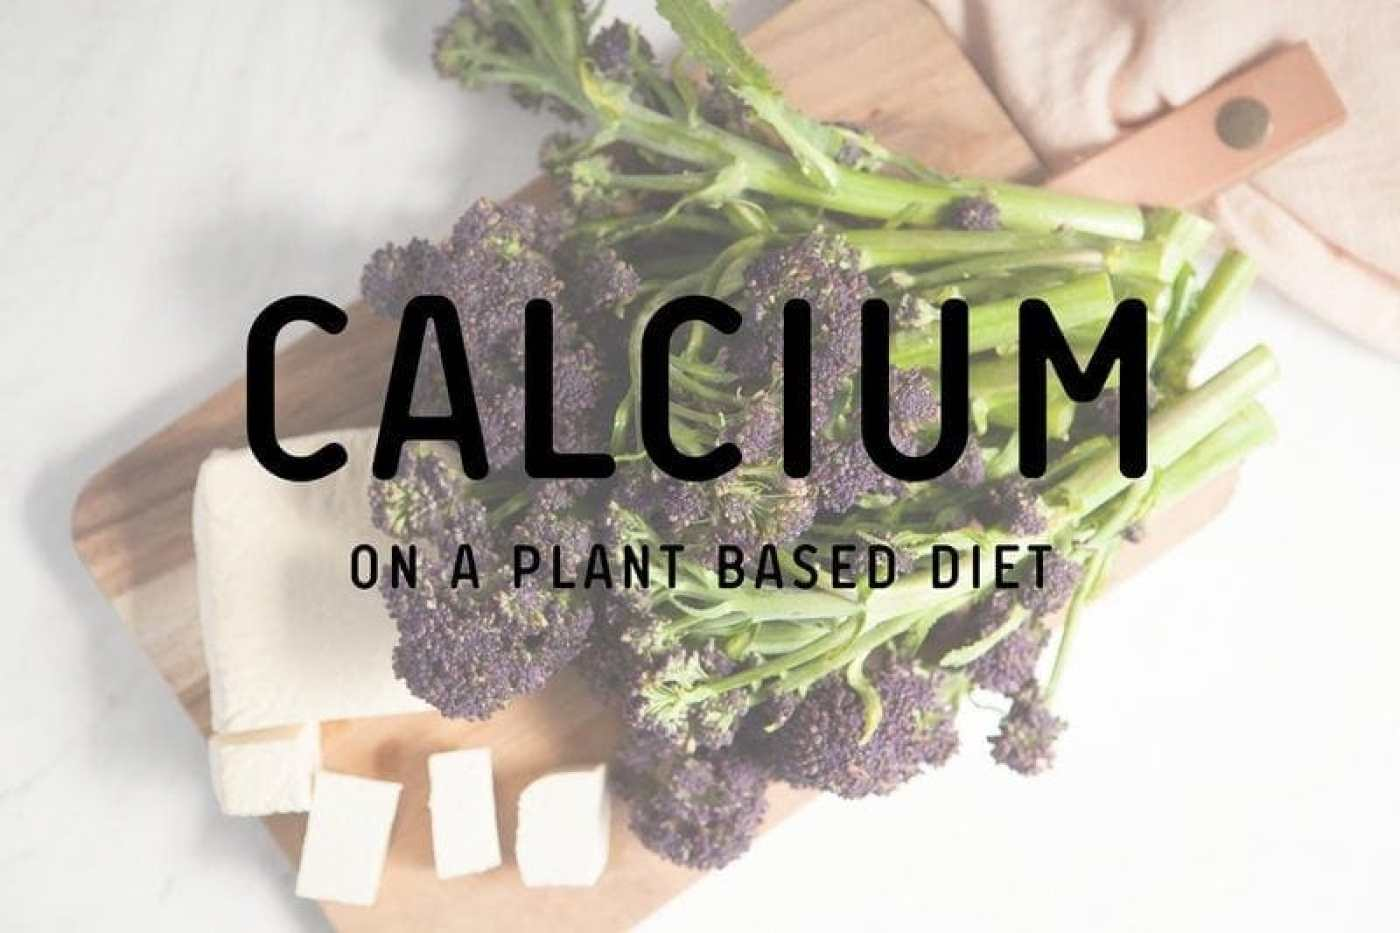 Calcium on a Plant Based Diet